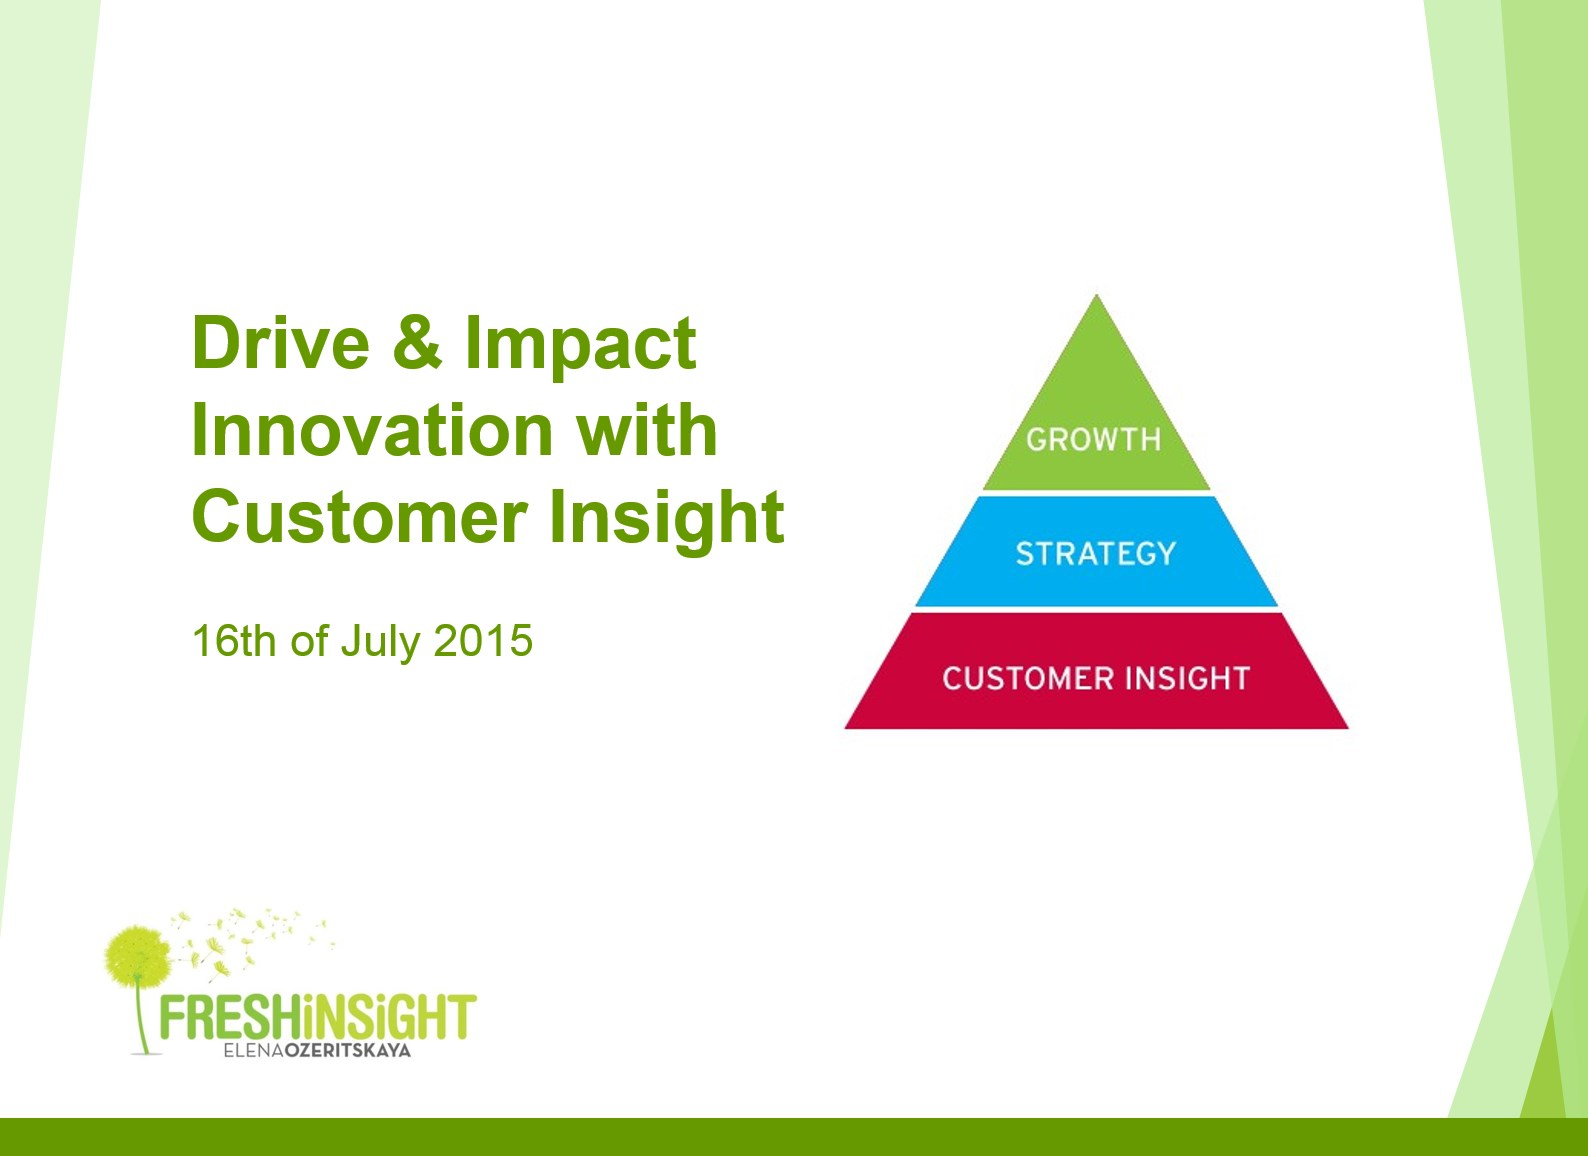 Drive & Impact Innovation with Customer Insight